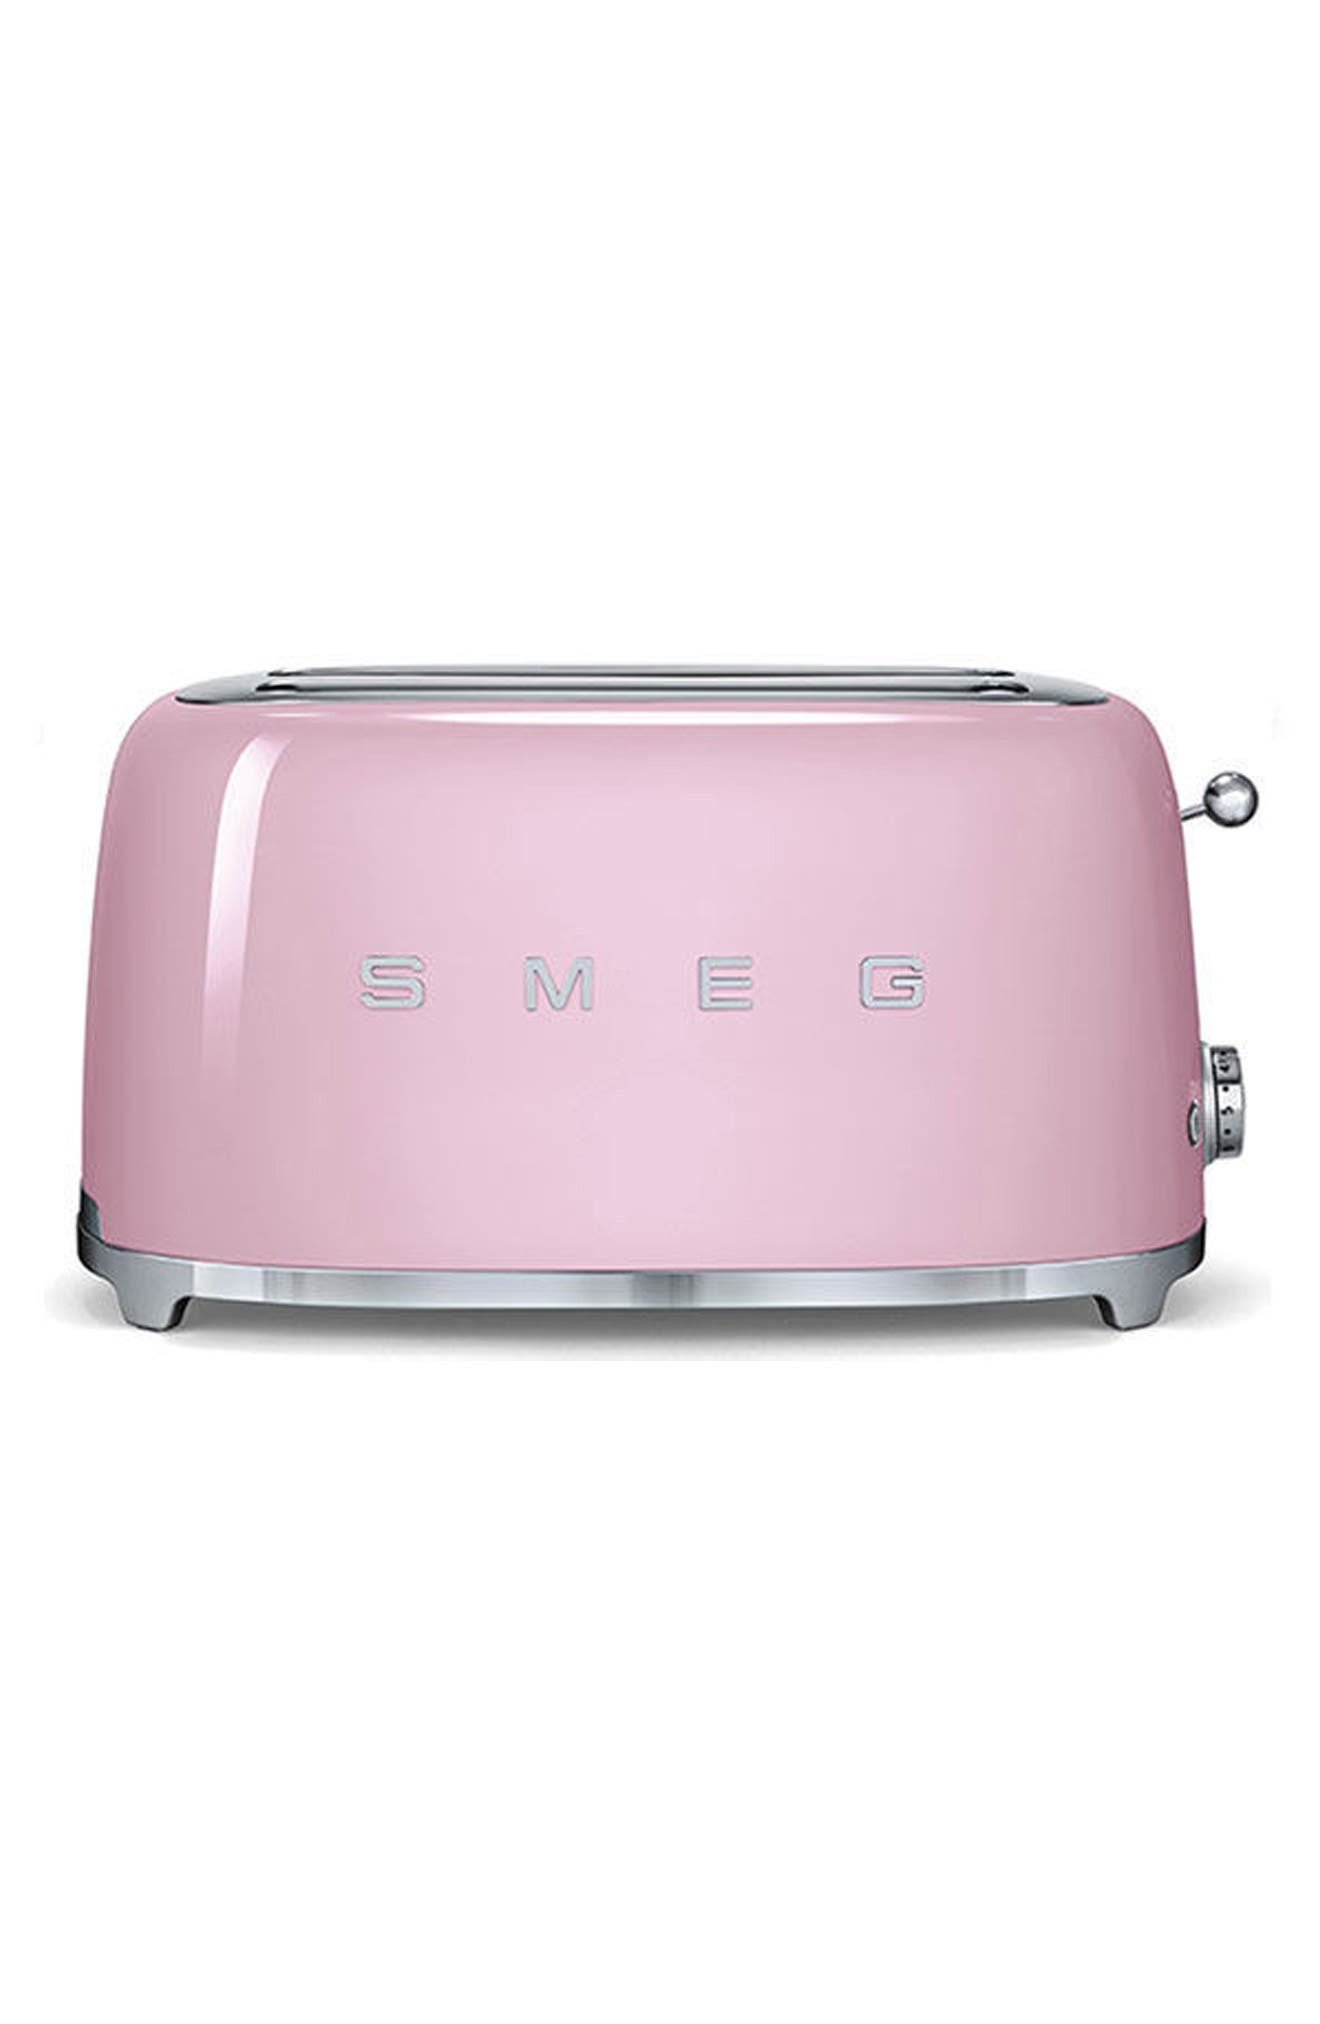 50s Retro Style Four-Slice Toaster,                         Main,                         color, Pink